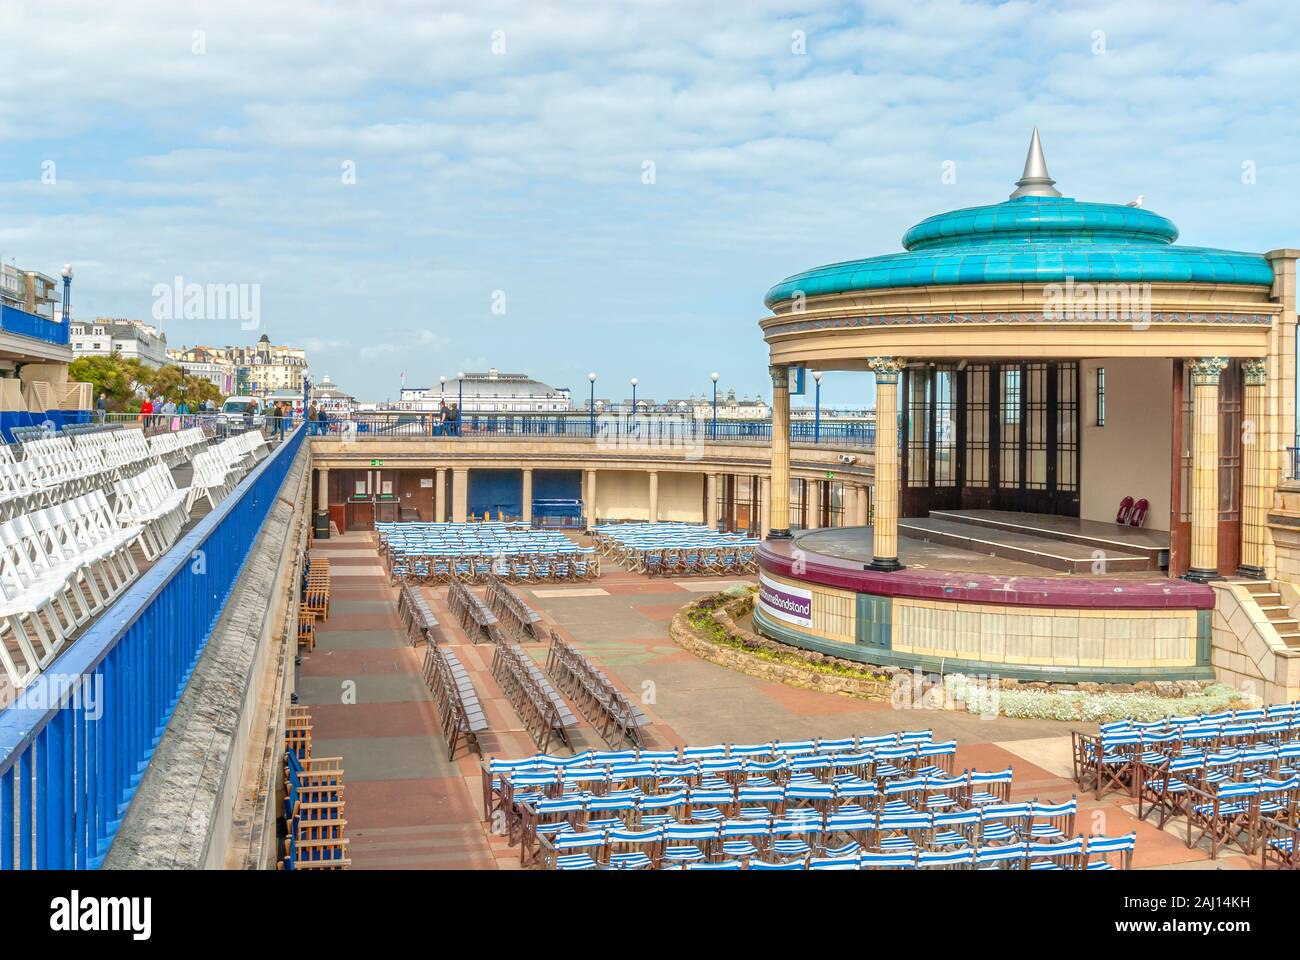 Bandstand at the popular seaside resort of Eastbourne in East Sussex, South England. Stock Photo